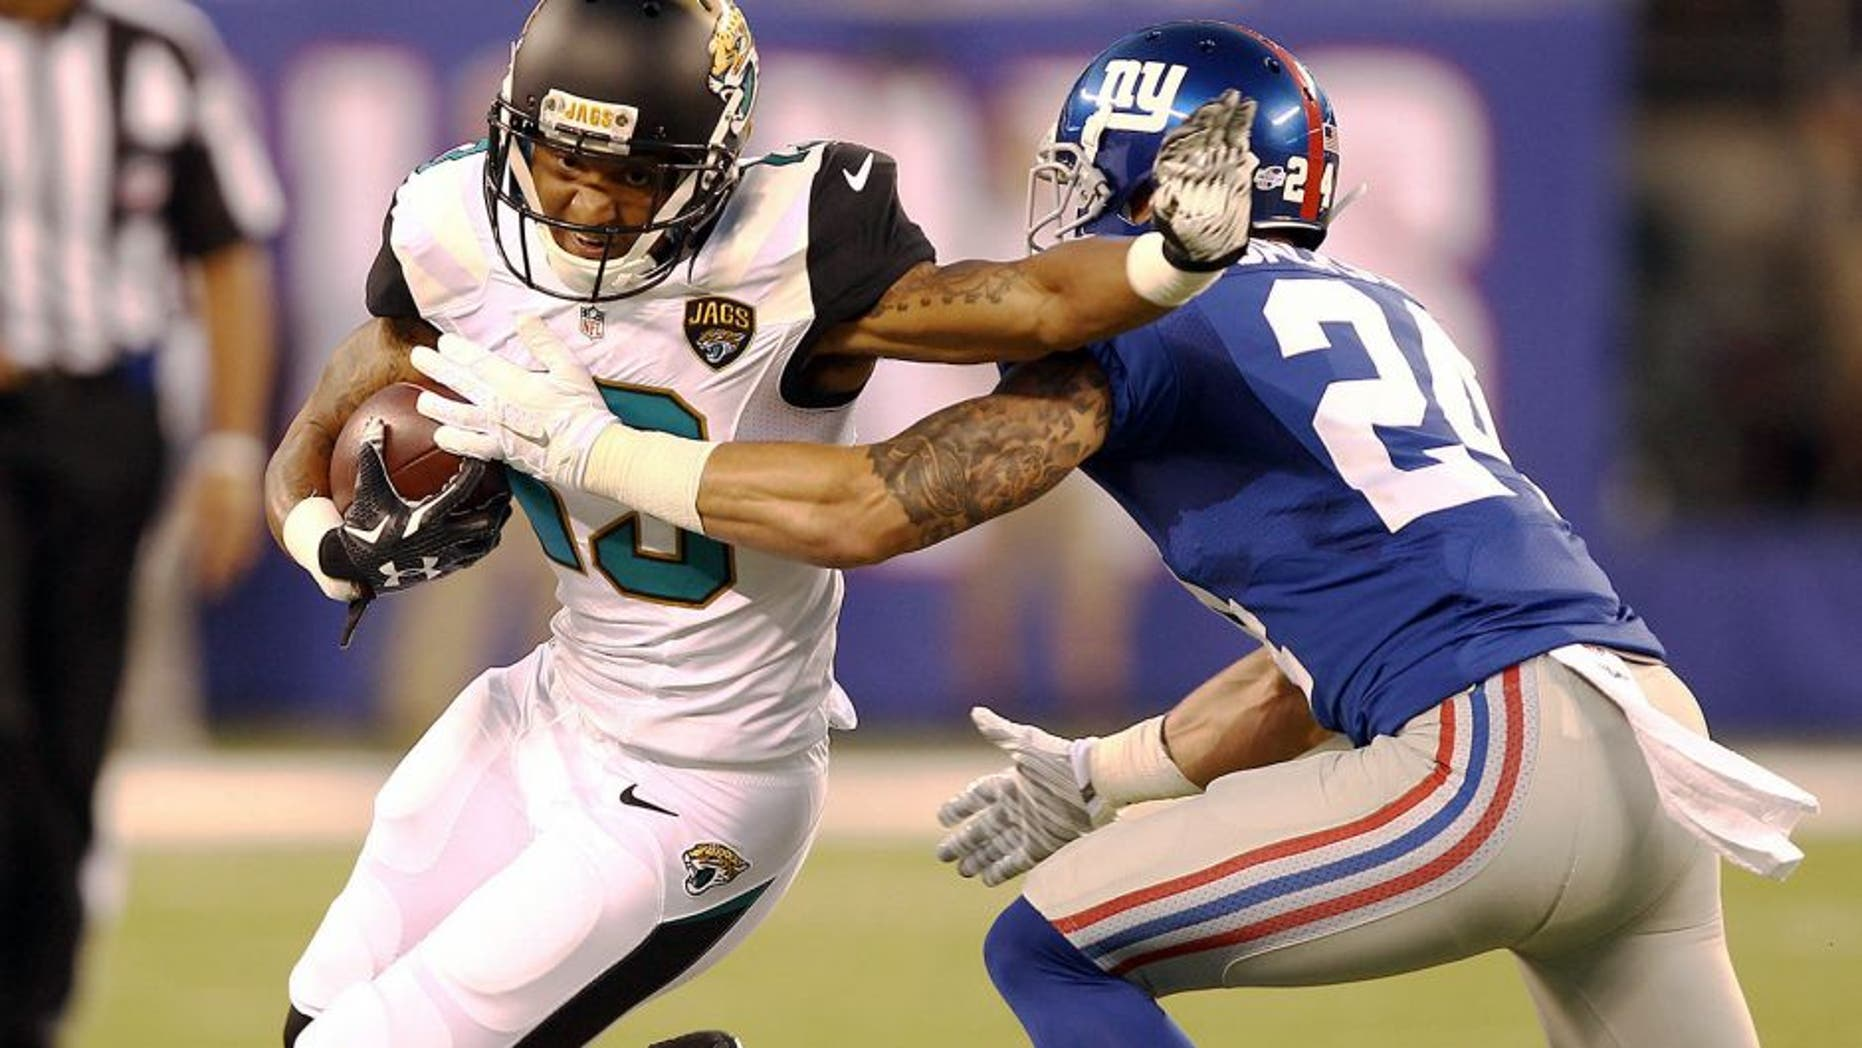 Aug 22, 2015; East Rutherford, NJ, USA; Jacksonville Jaguars wide receiver Rashad Greene (13) catches a ball in front of New York Giants safety Bennett Jackson (24) during the first half at MetLife Stadium. Mandatory Credit: Danny Wild-USA TODAY Sports